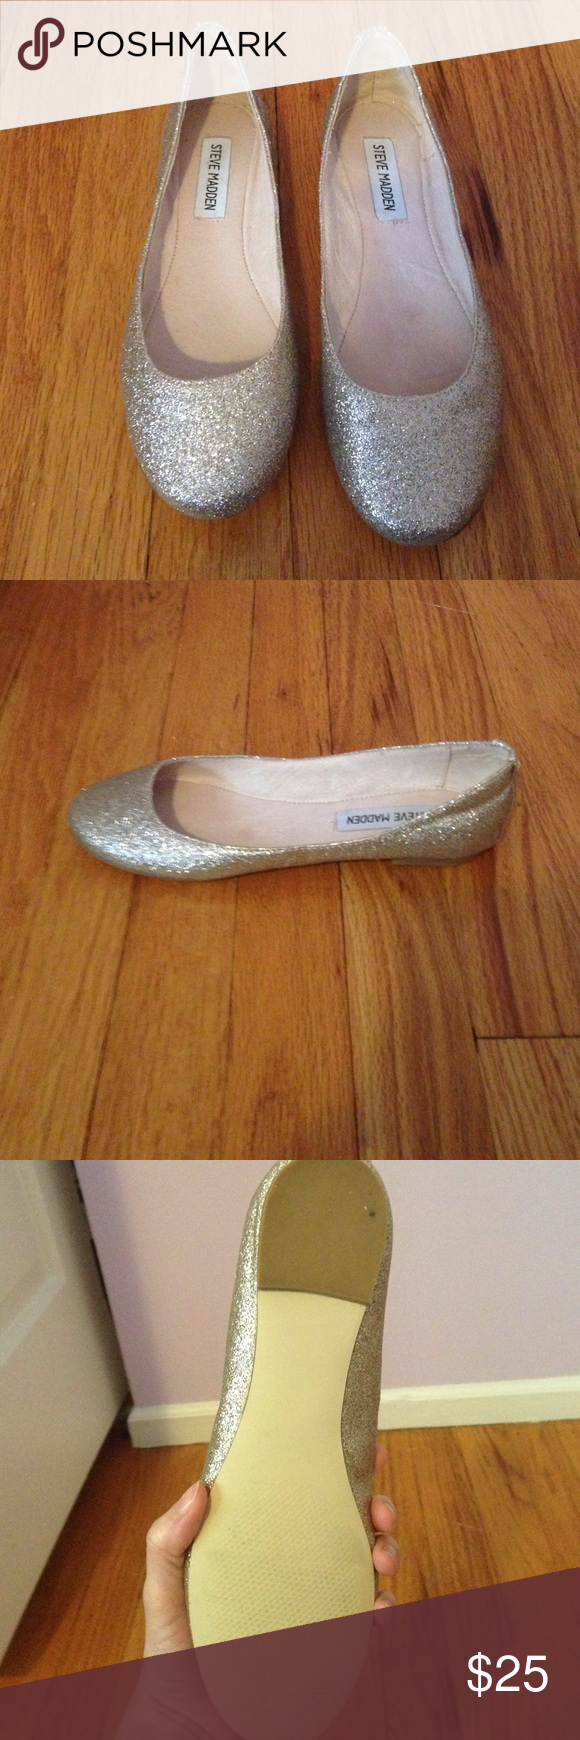 Adorable Sparkly Silver/Gold Steve Madden Flats Near perfect condition! A little bit of stretch on the side of the shoe as you can see in the last picture. Only worn a handful of times. Whether shoes appear to be silver or gold depends on the lighting. Everything in my closet is buy 1, get 1 30% off. I'm also open to negotiation and trades. Steve Madden Shoes Flats & Loafers